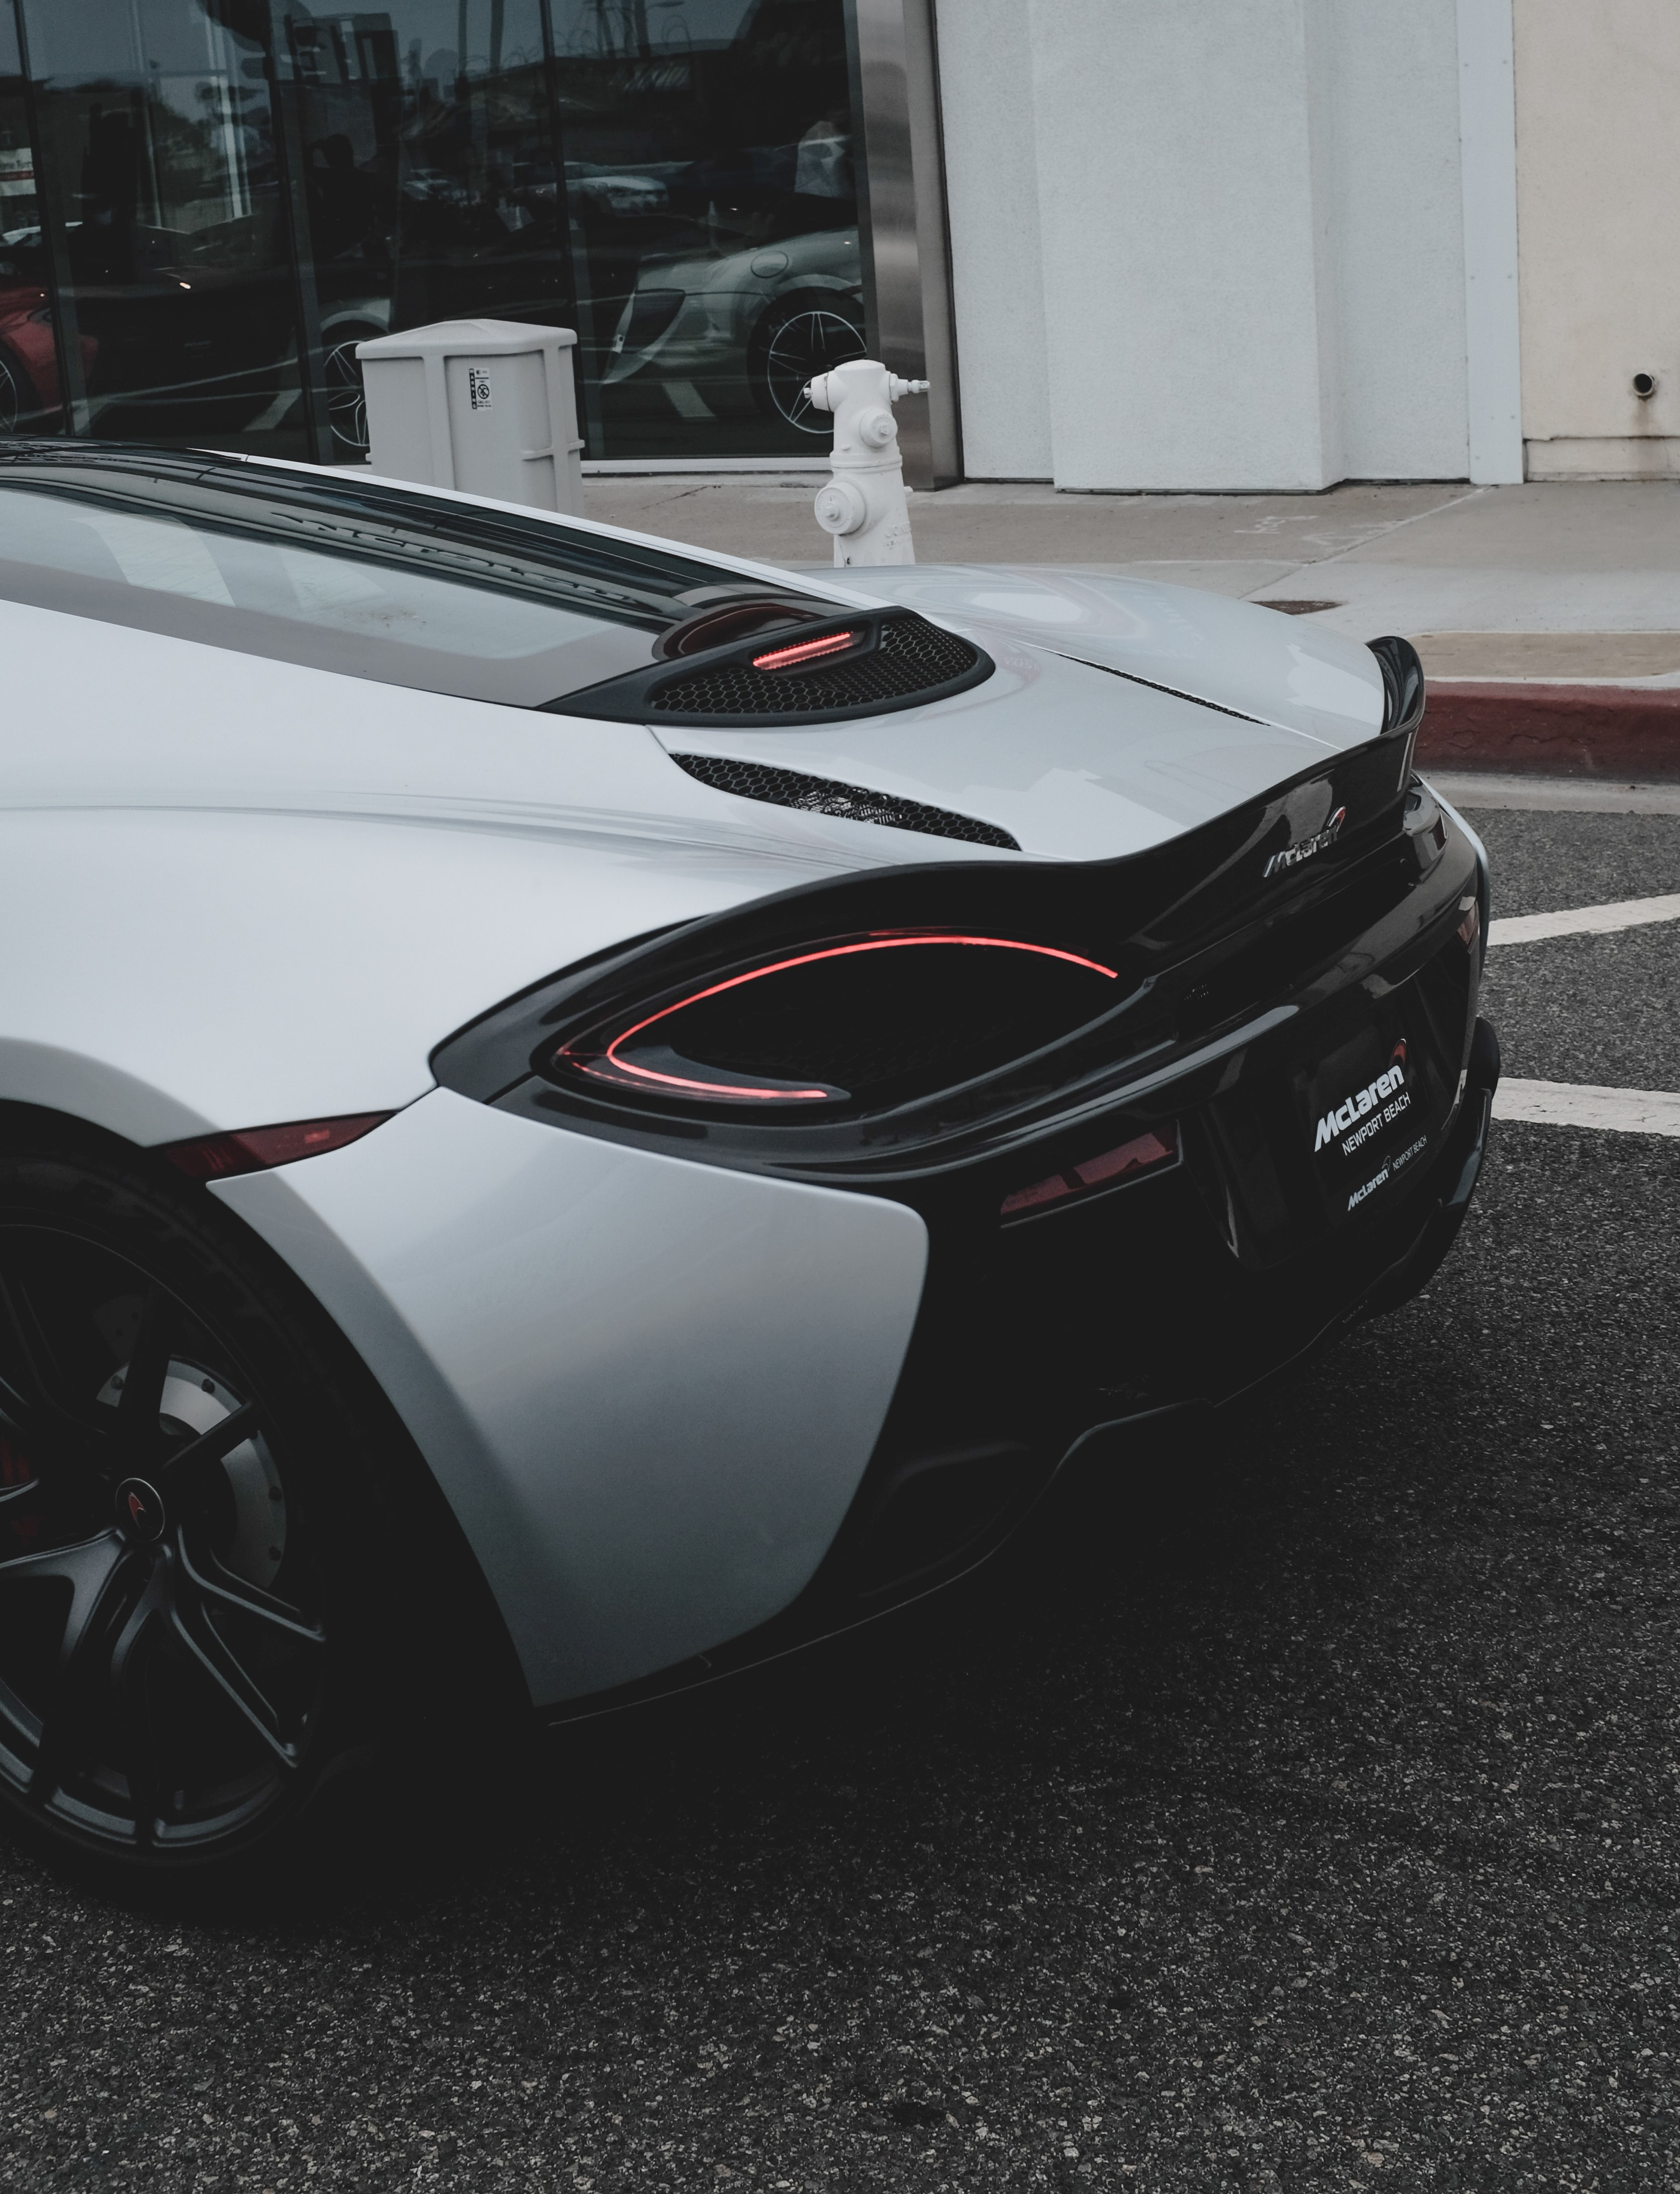 The taillights on a white sports car.